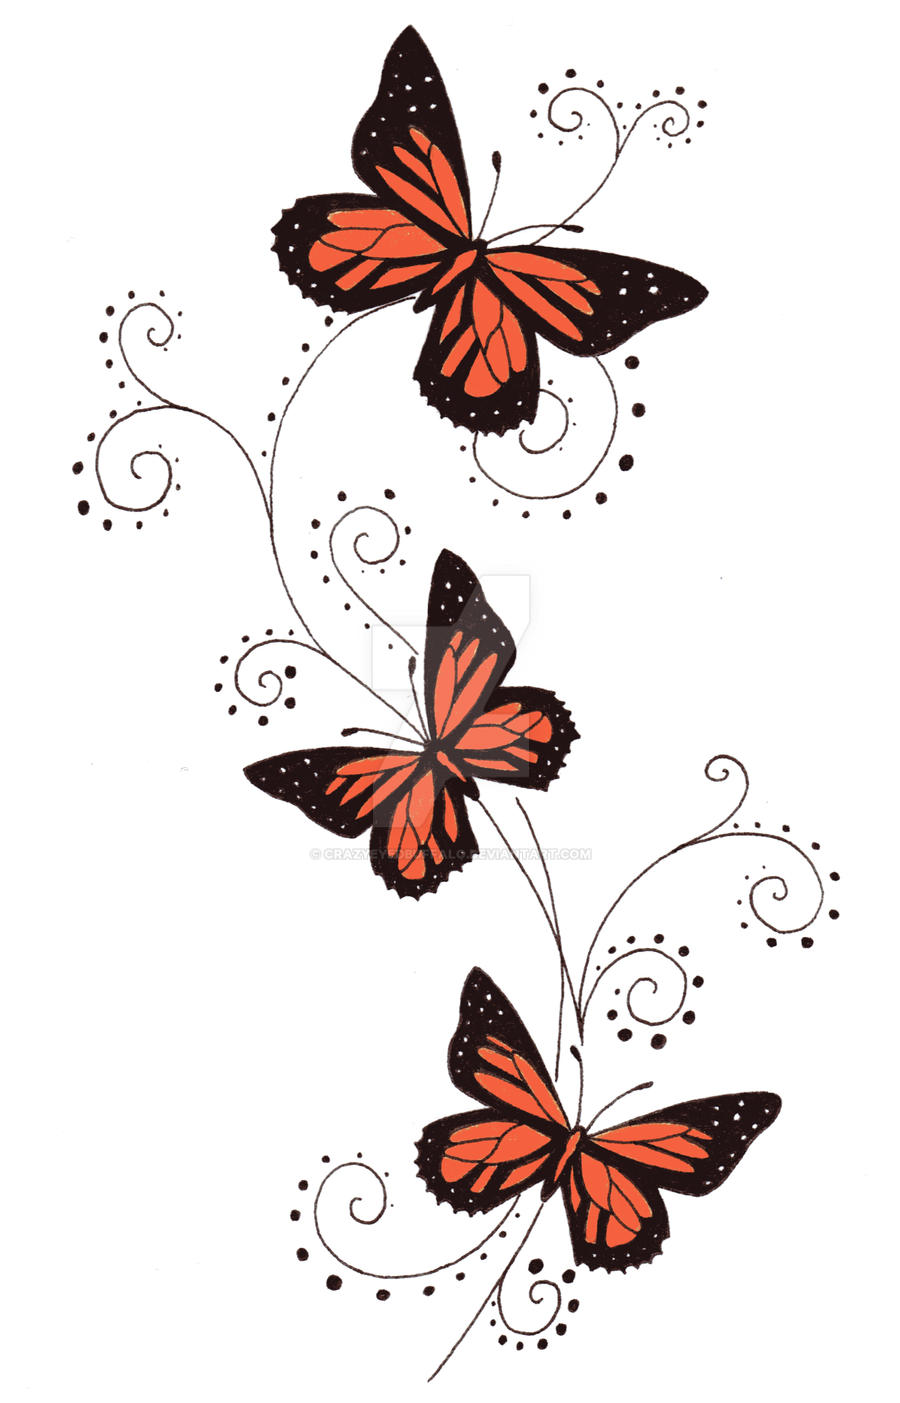 Orange butterfly swirls by crazyeyedbuffalo